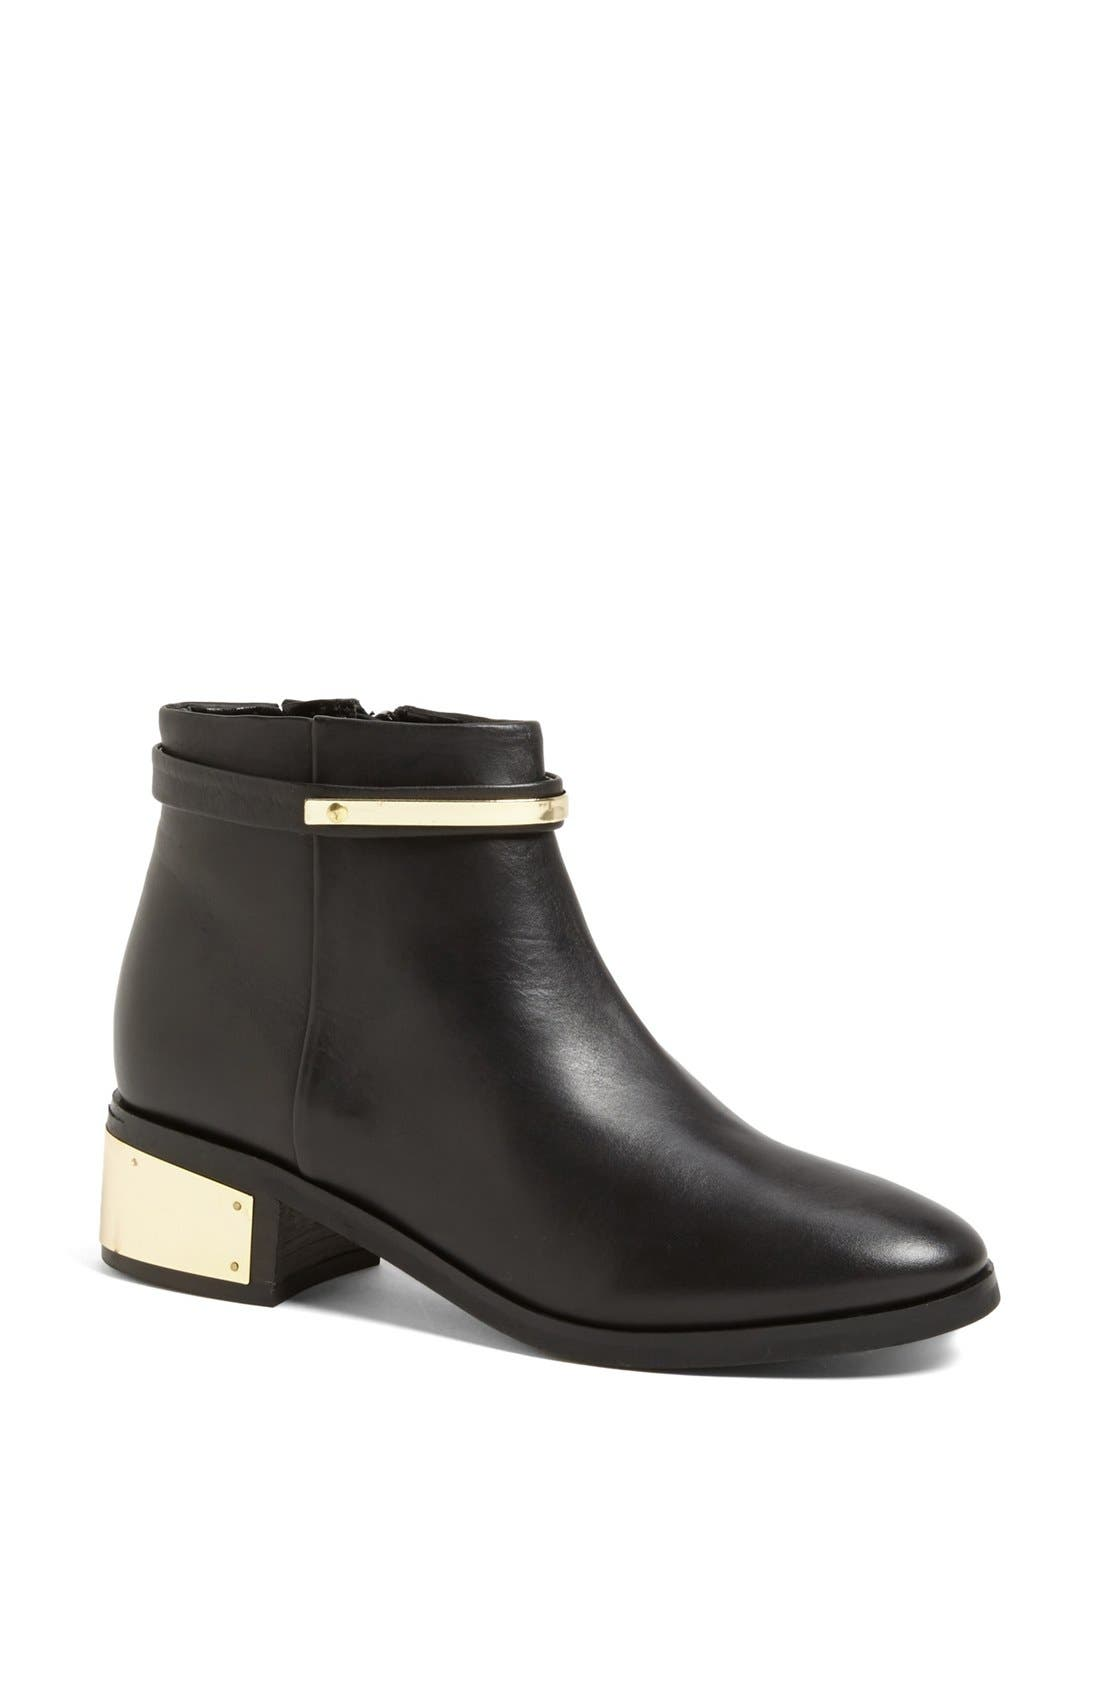 Alternate Image 1 Selected - KG Kurt Geiger 'Vice' Bootie